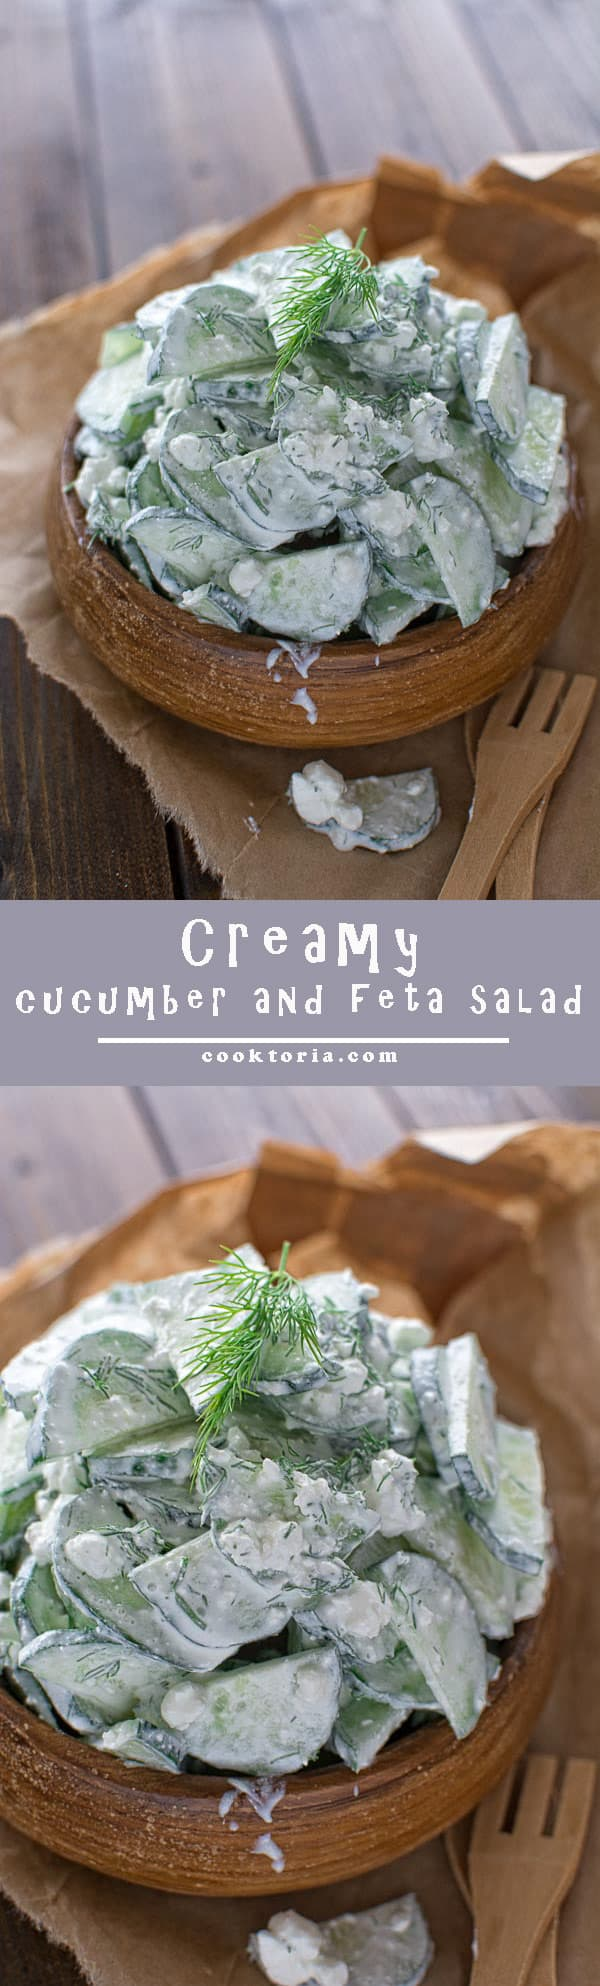 Delicious and creamy cucumber and feta salad that your whole family will love. ❤COOKTORIA.COM